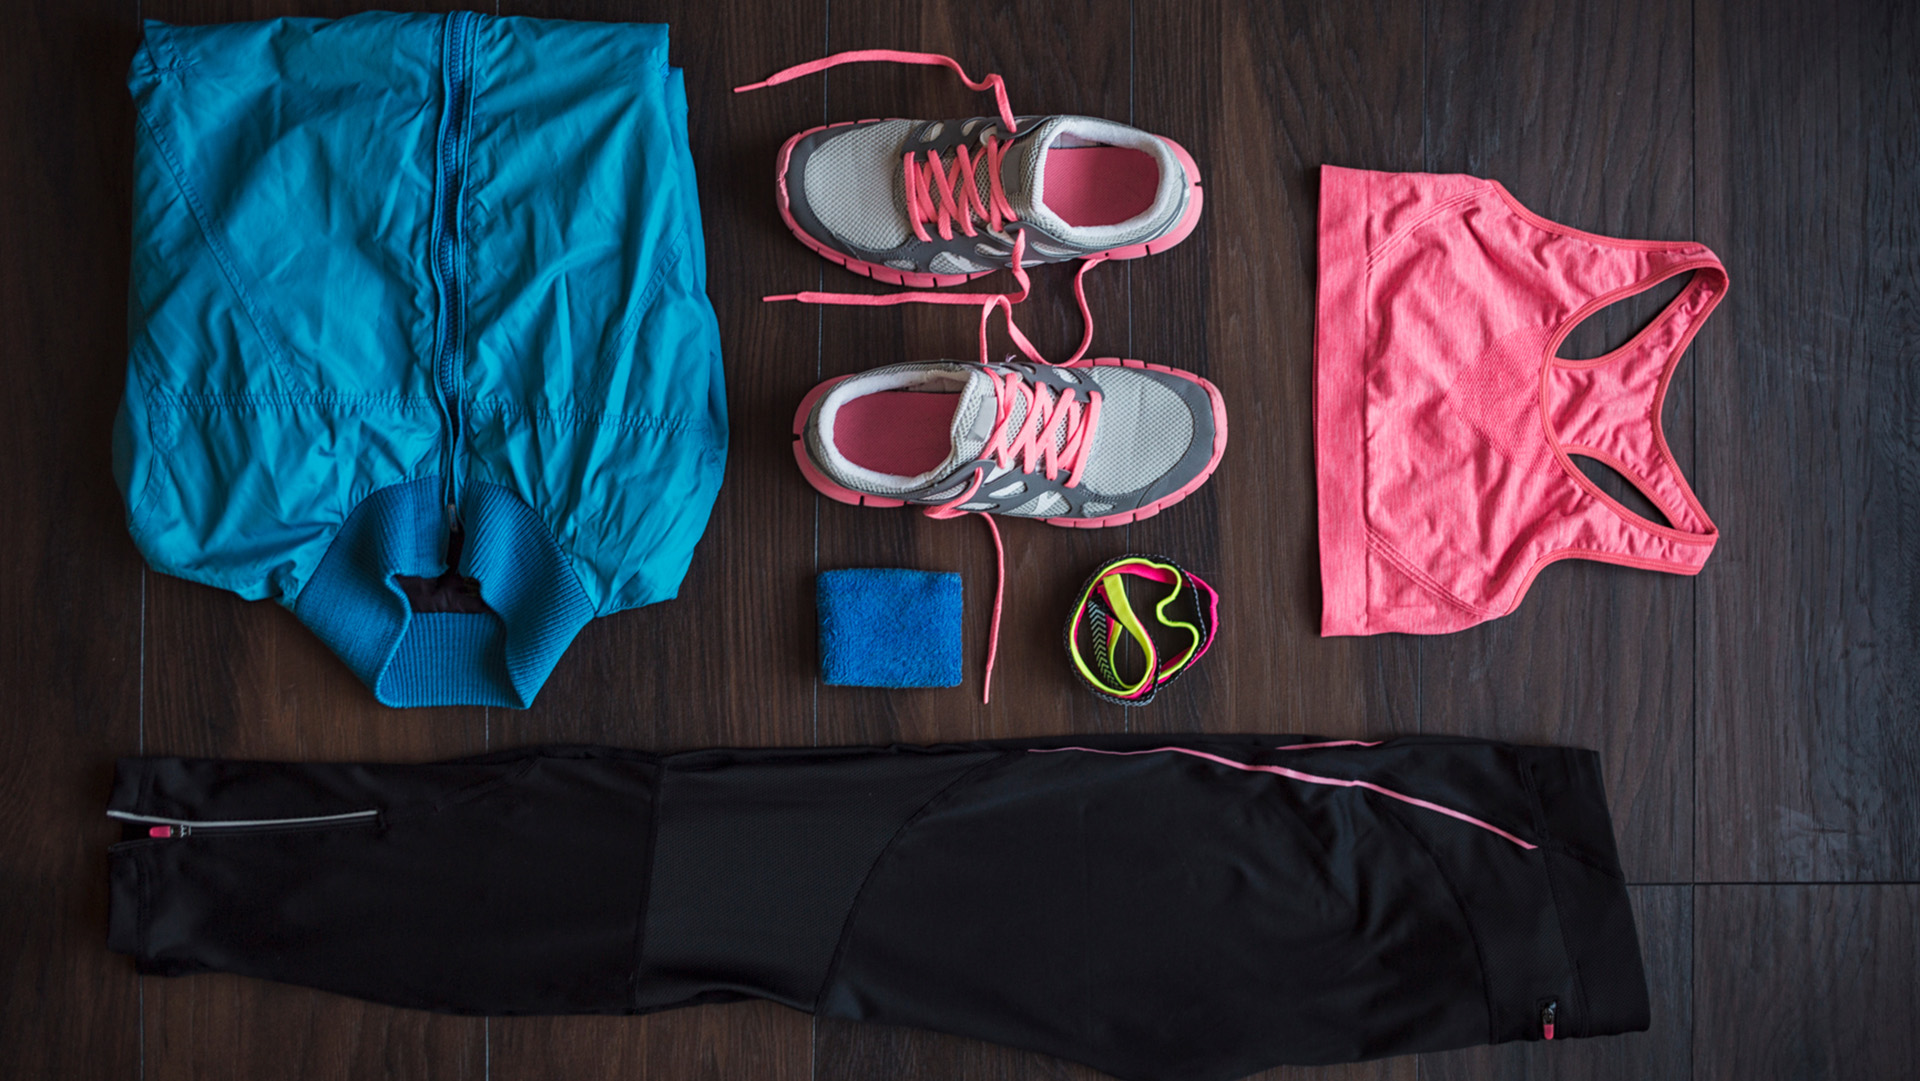 Clothes and accesories a woman needs for working out.